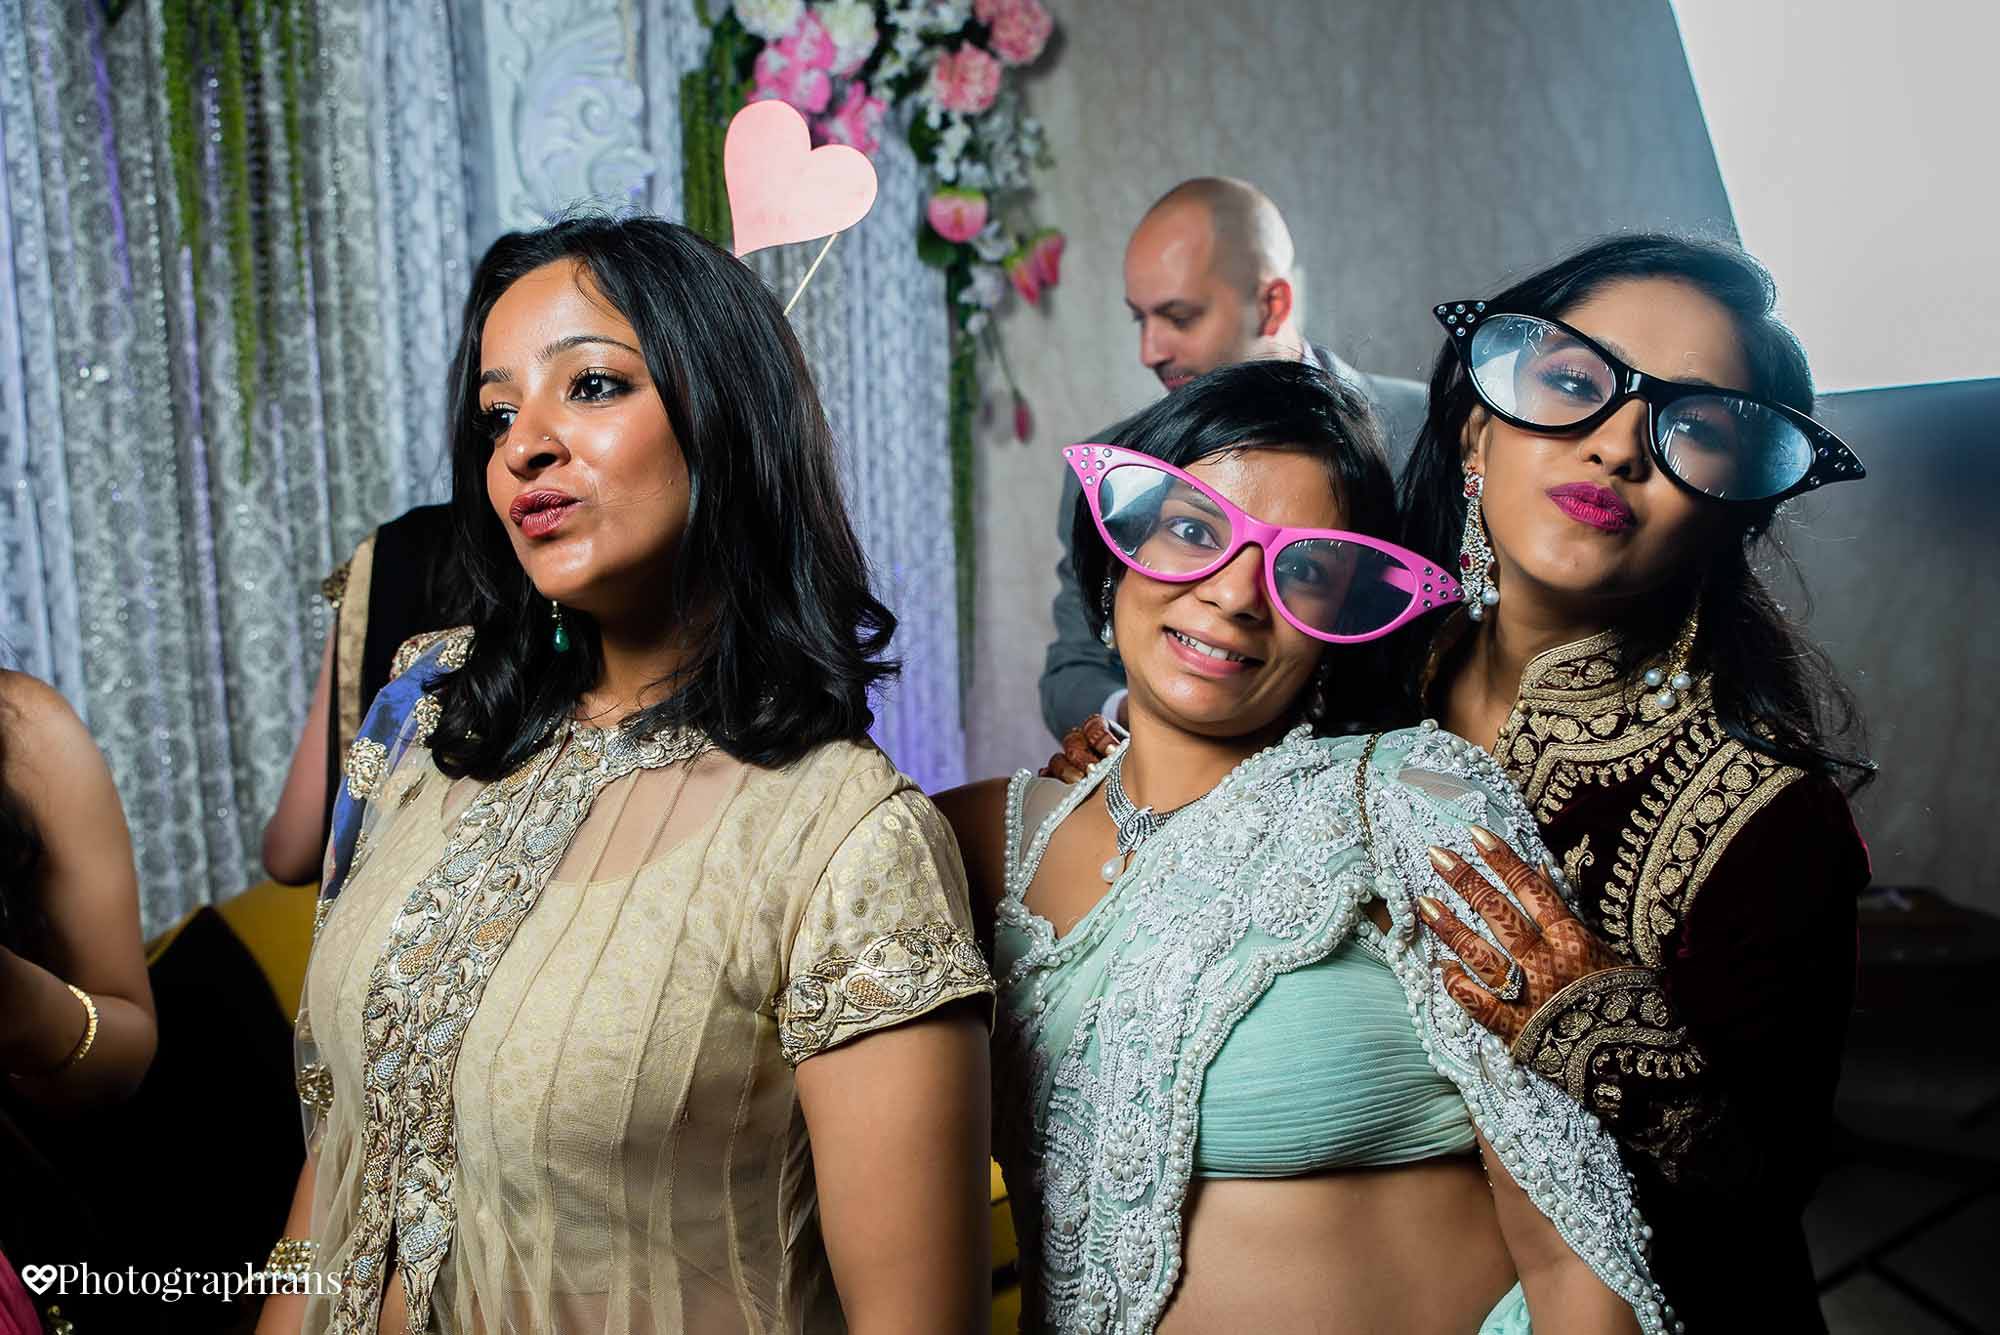 Punjabi_Marwari_Wedding_Kolkata_Photographians_-VIDHI-242